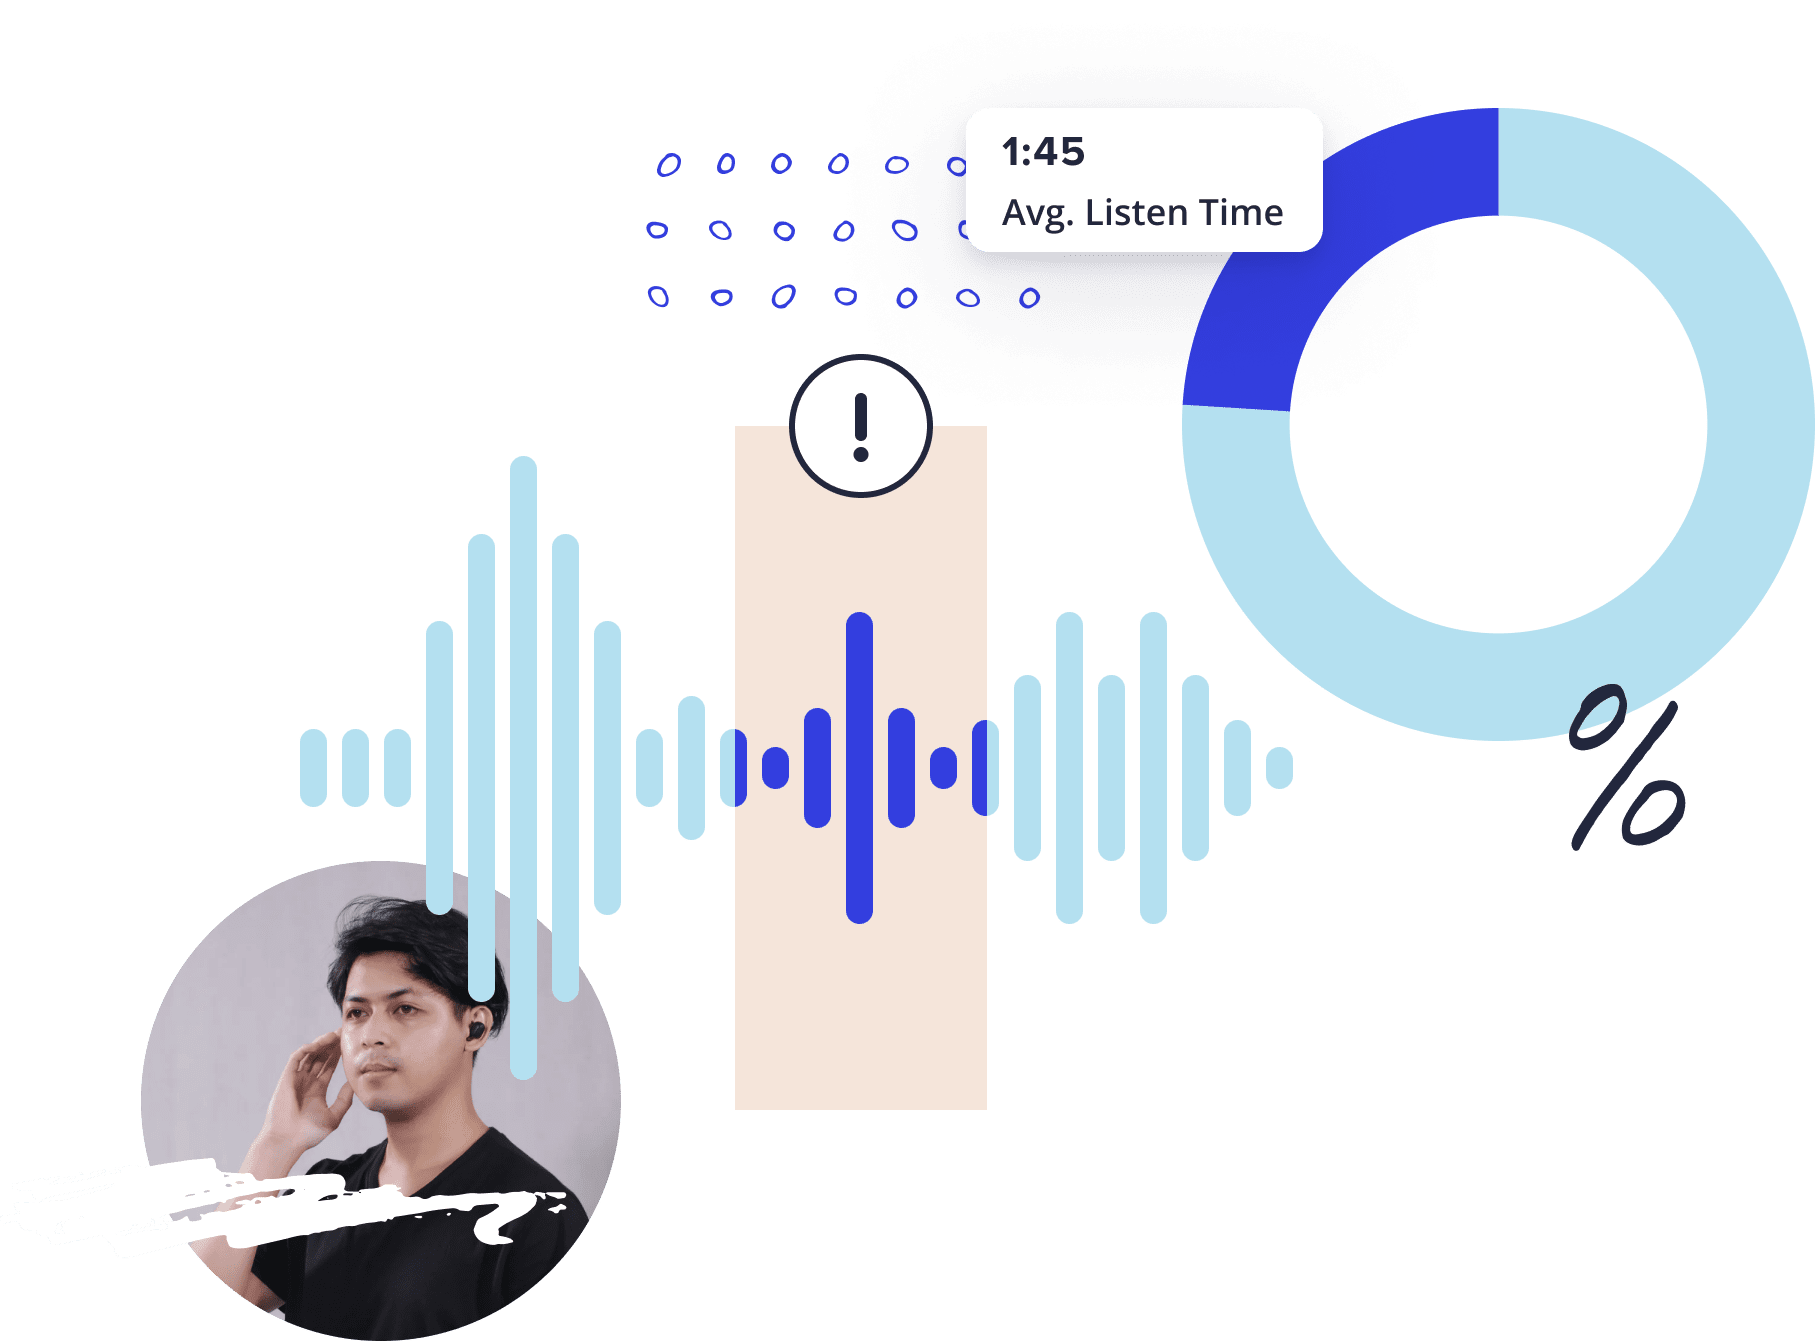 A composite image of voice EQ, a bar chart, and profile pics.